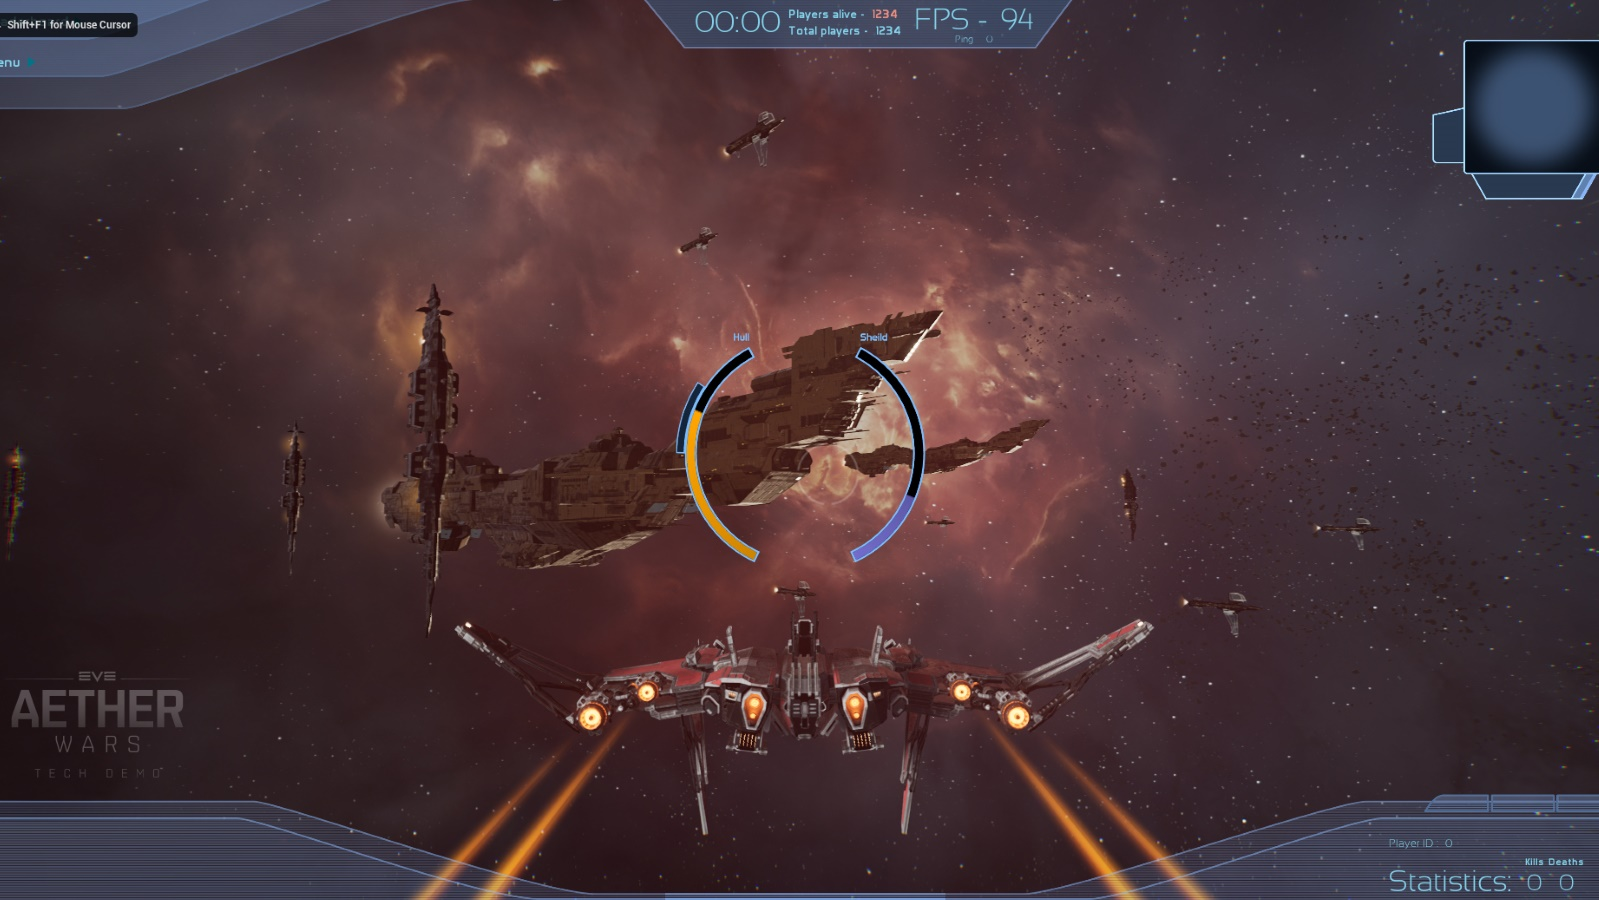 Aether Wars is a one-off 10,000 player Eve deathmatch | Rock Paper